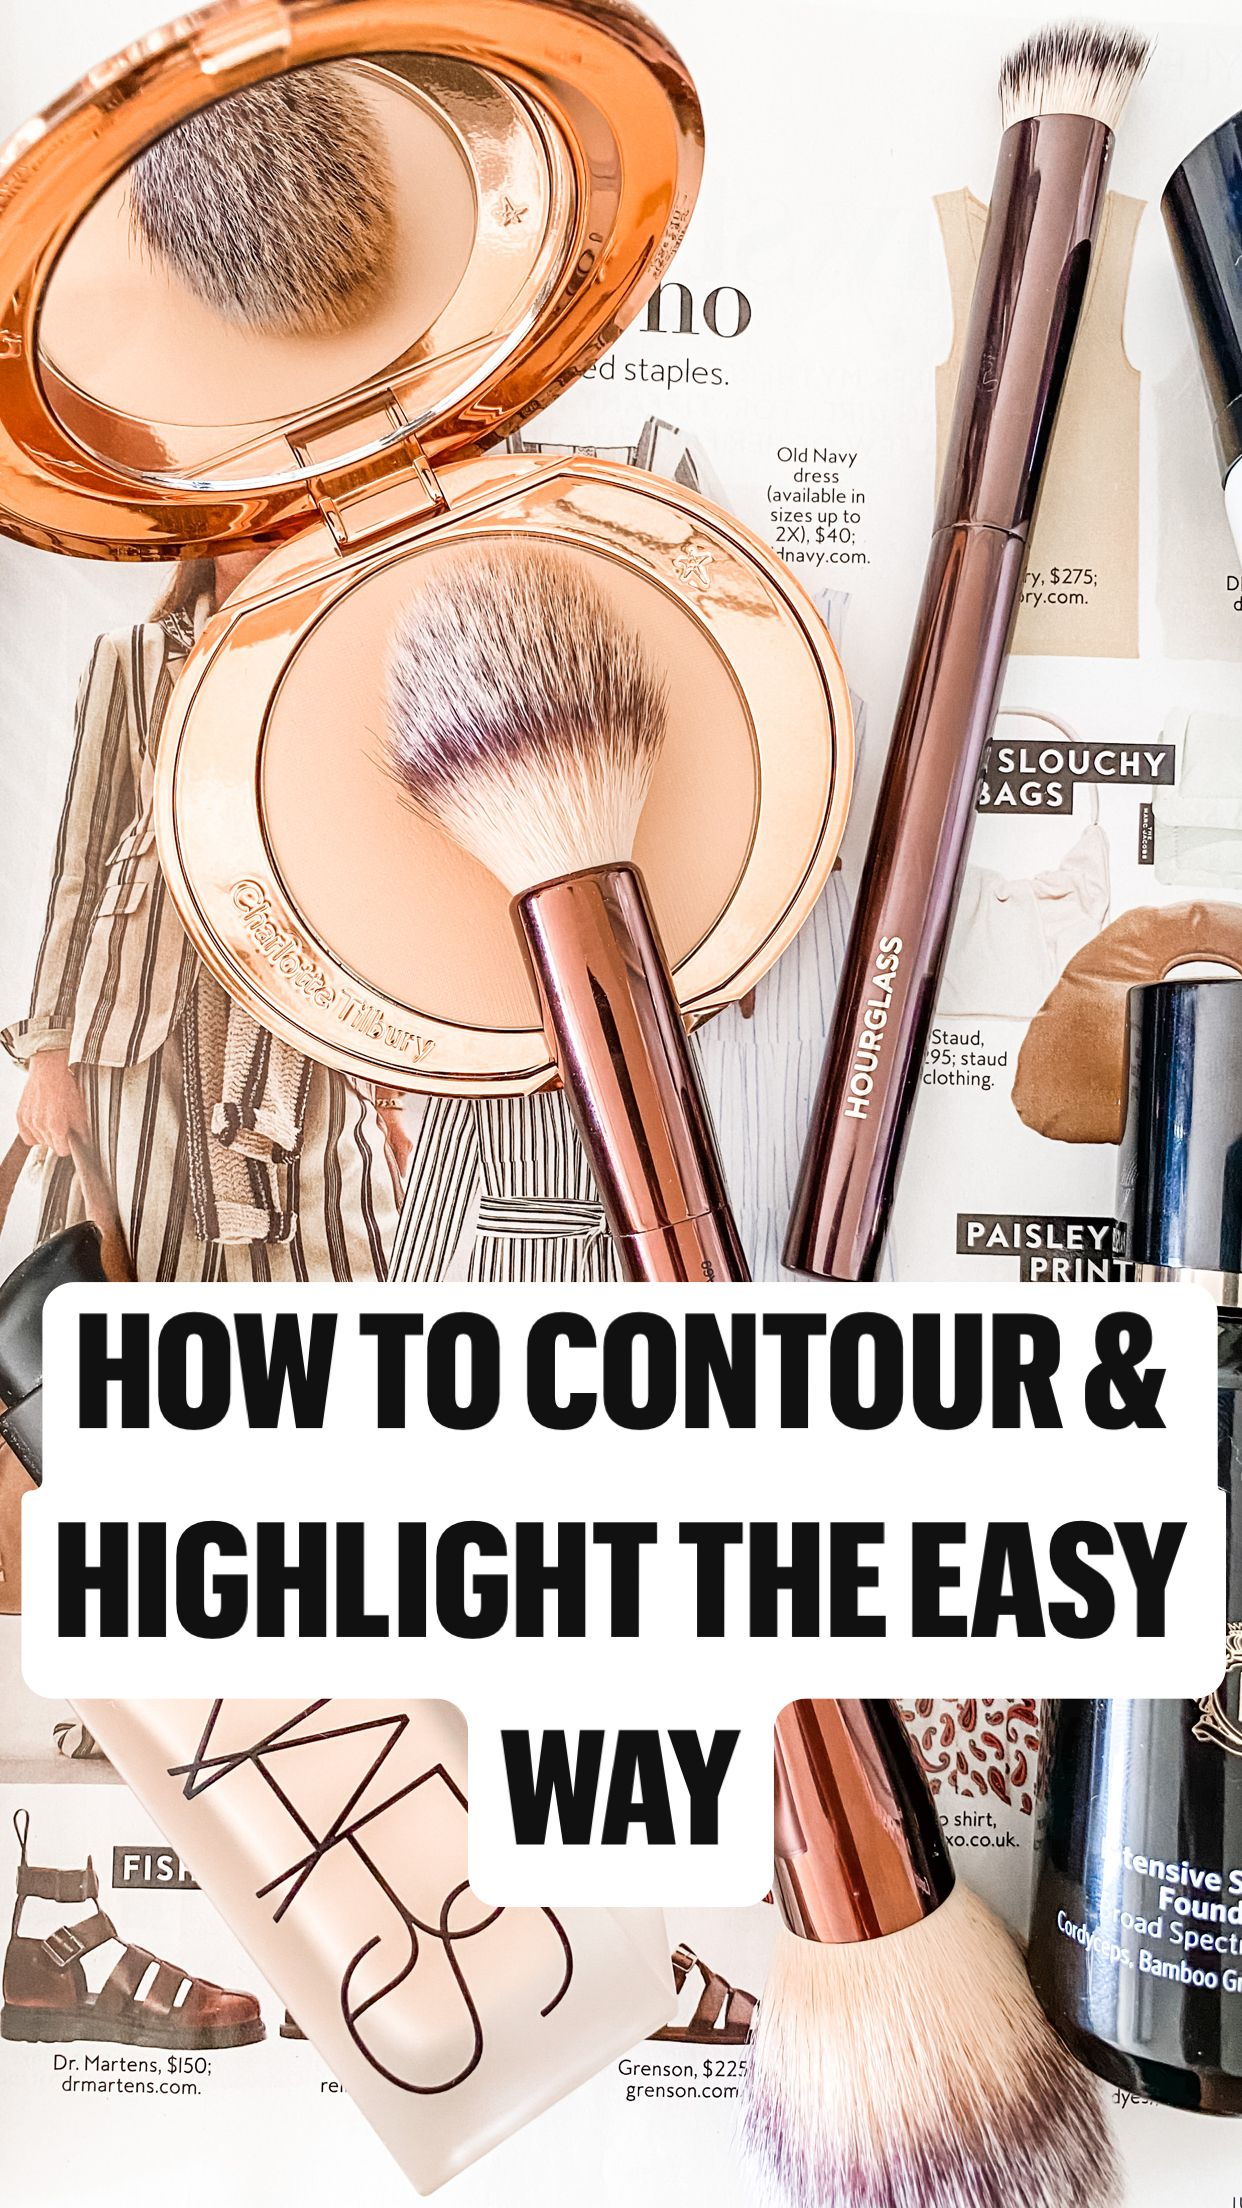 How to Contour & Highlight the easy way